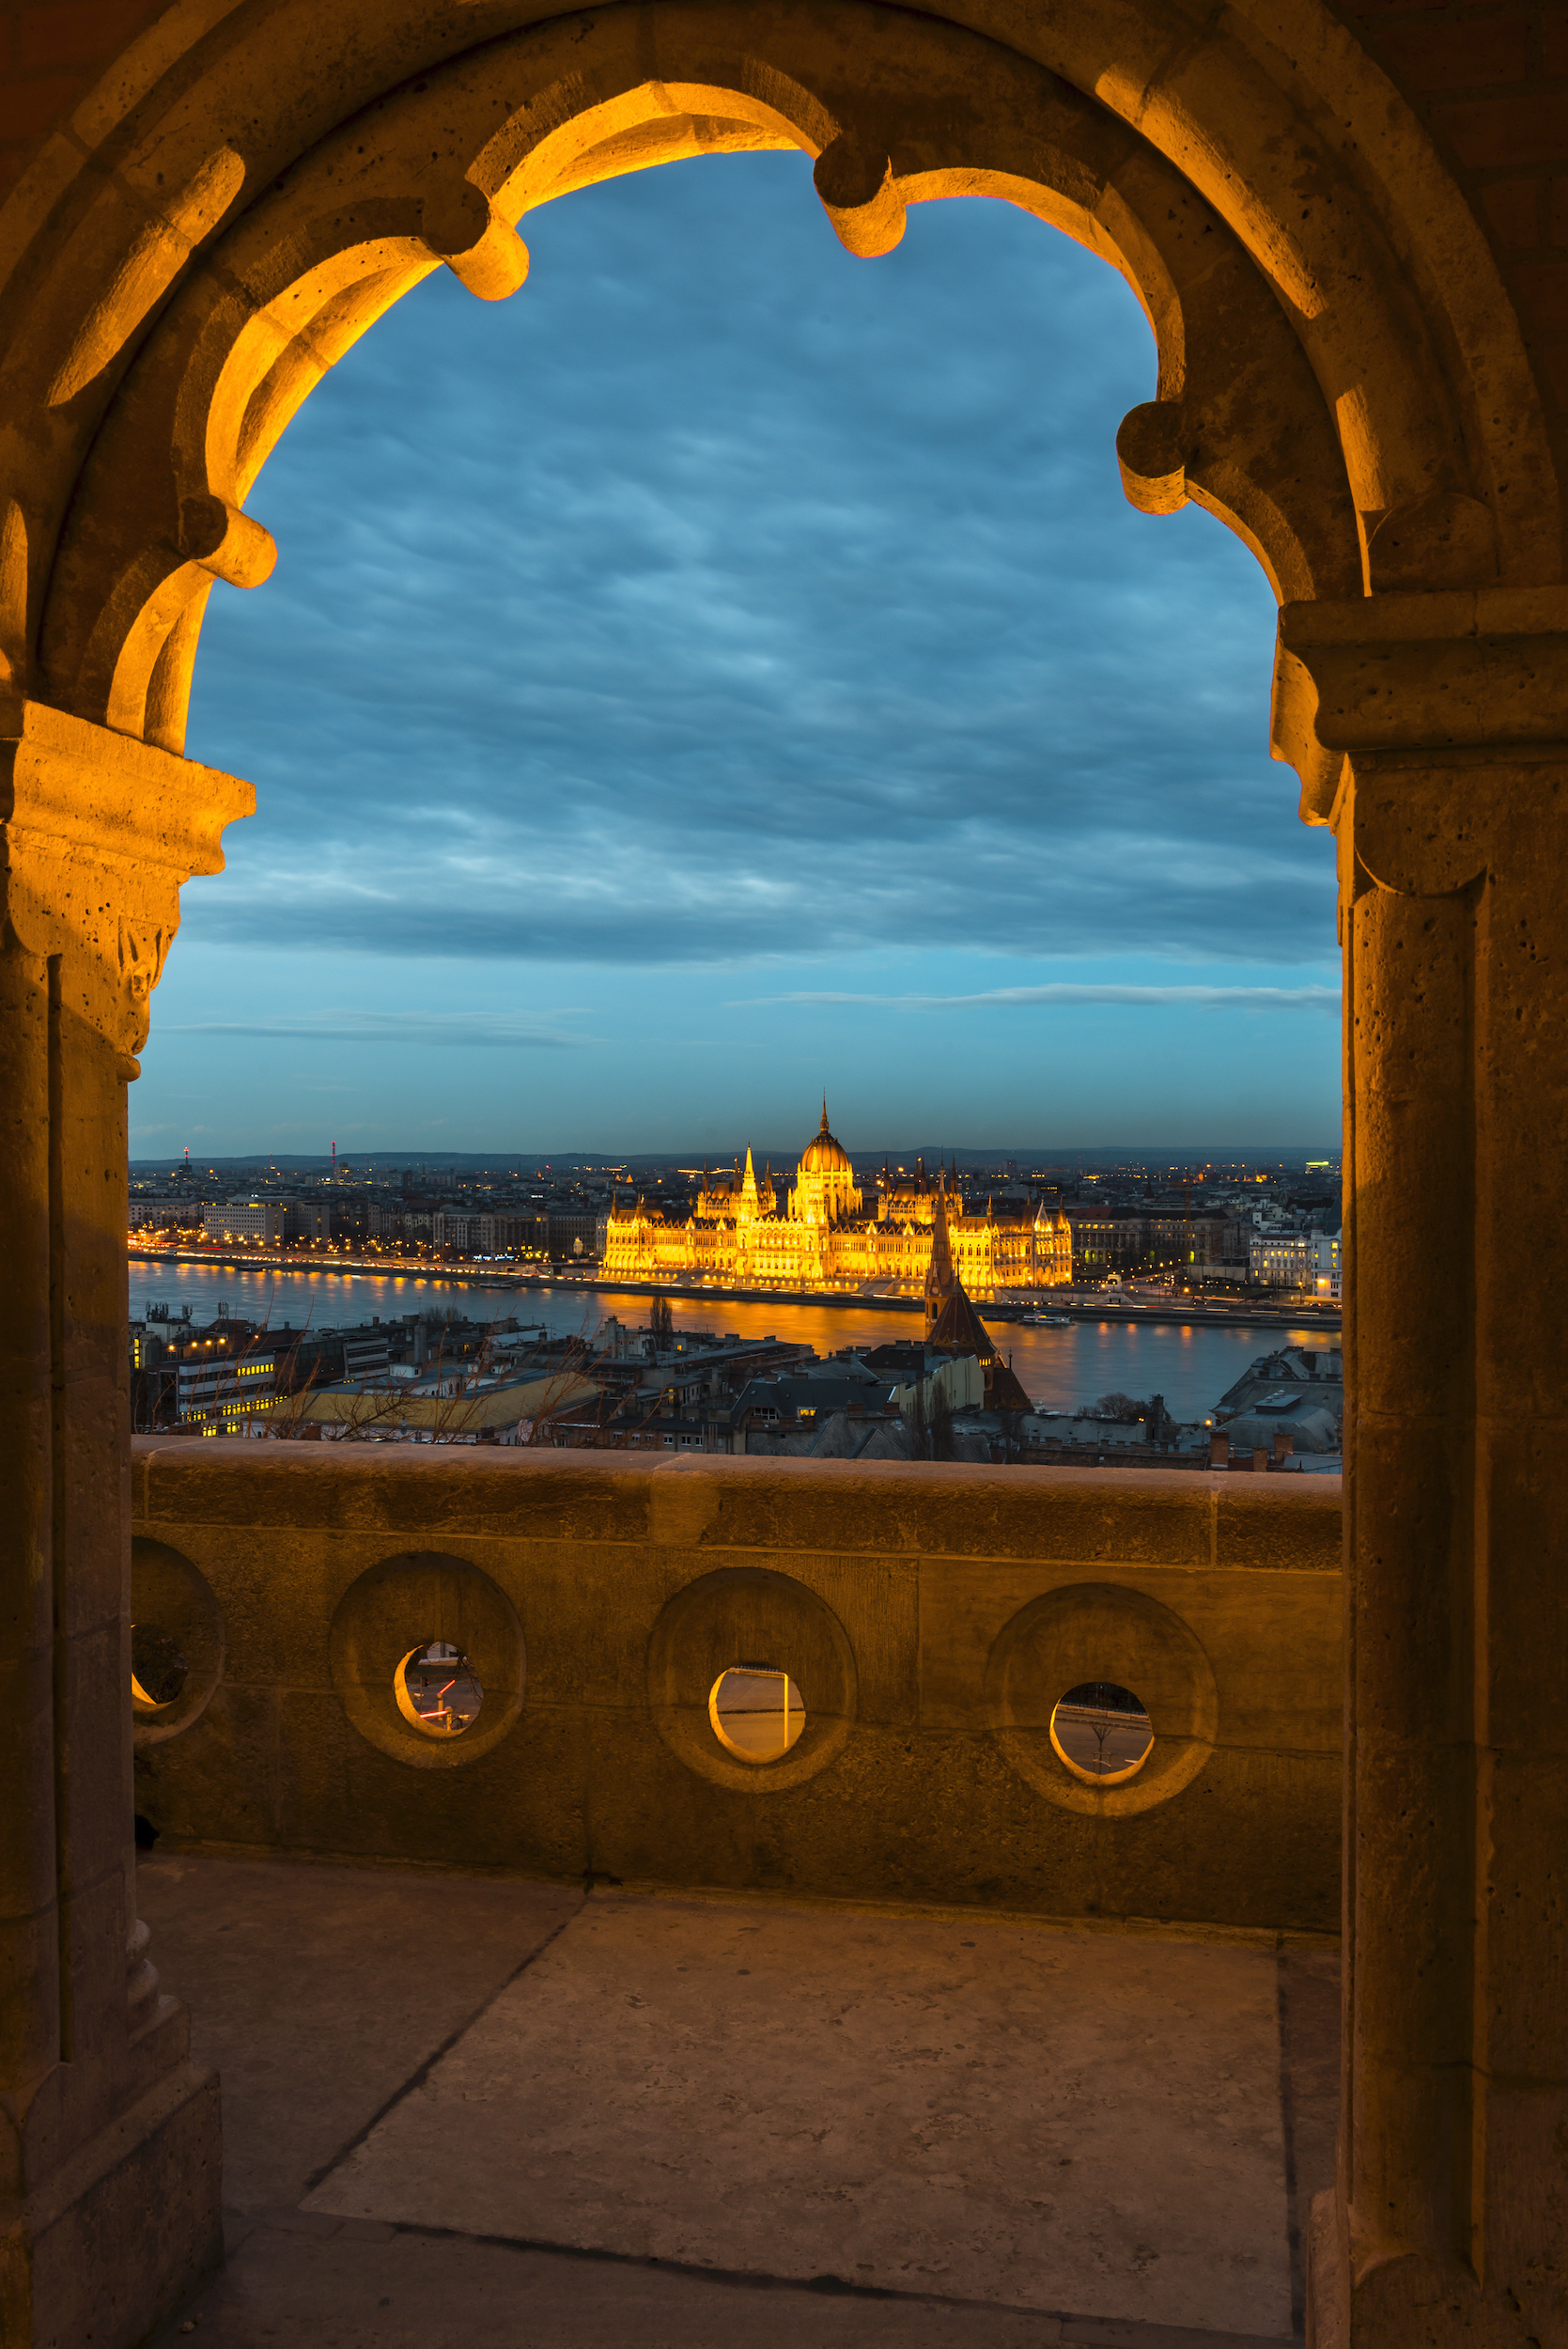 A view of the Hungarian Parliament from fishermens bastion in Budapest just after sunset and at the start of blue hour.